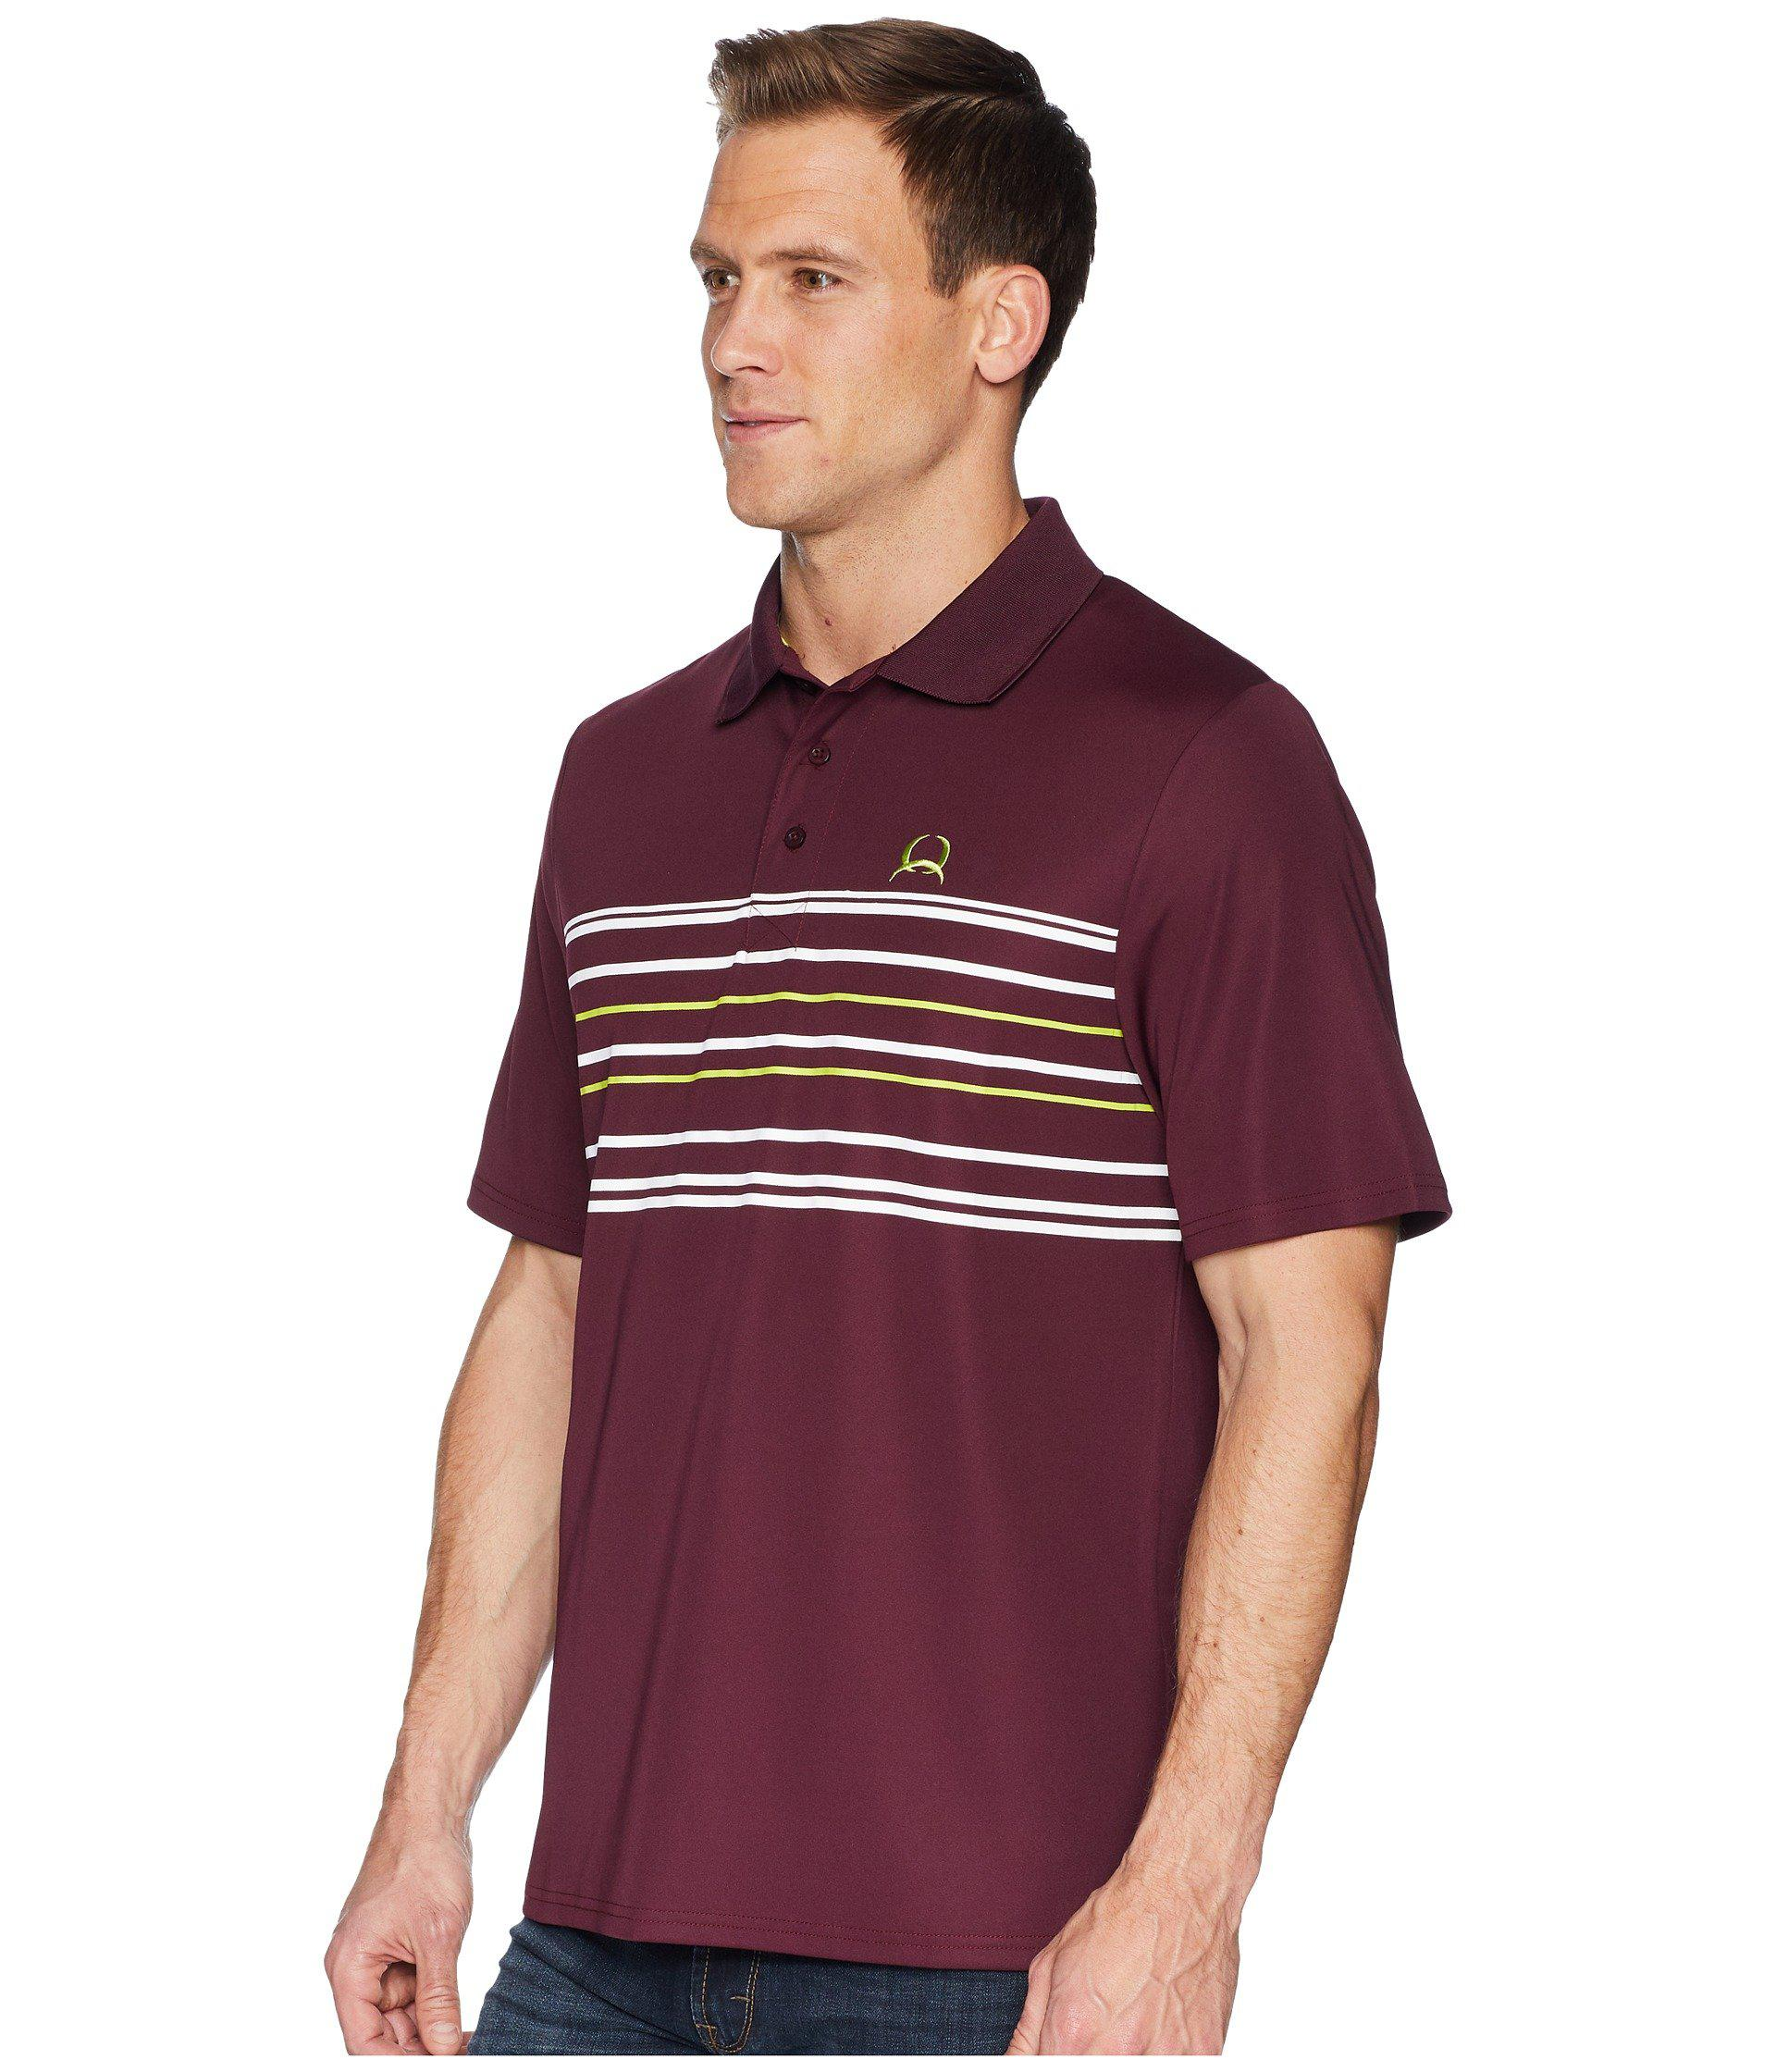 acf0c8fc Lyst - Cinch Athletic Tech Polo (burgundy 1) Men's Short Sleeve ...